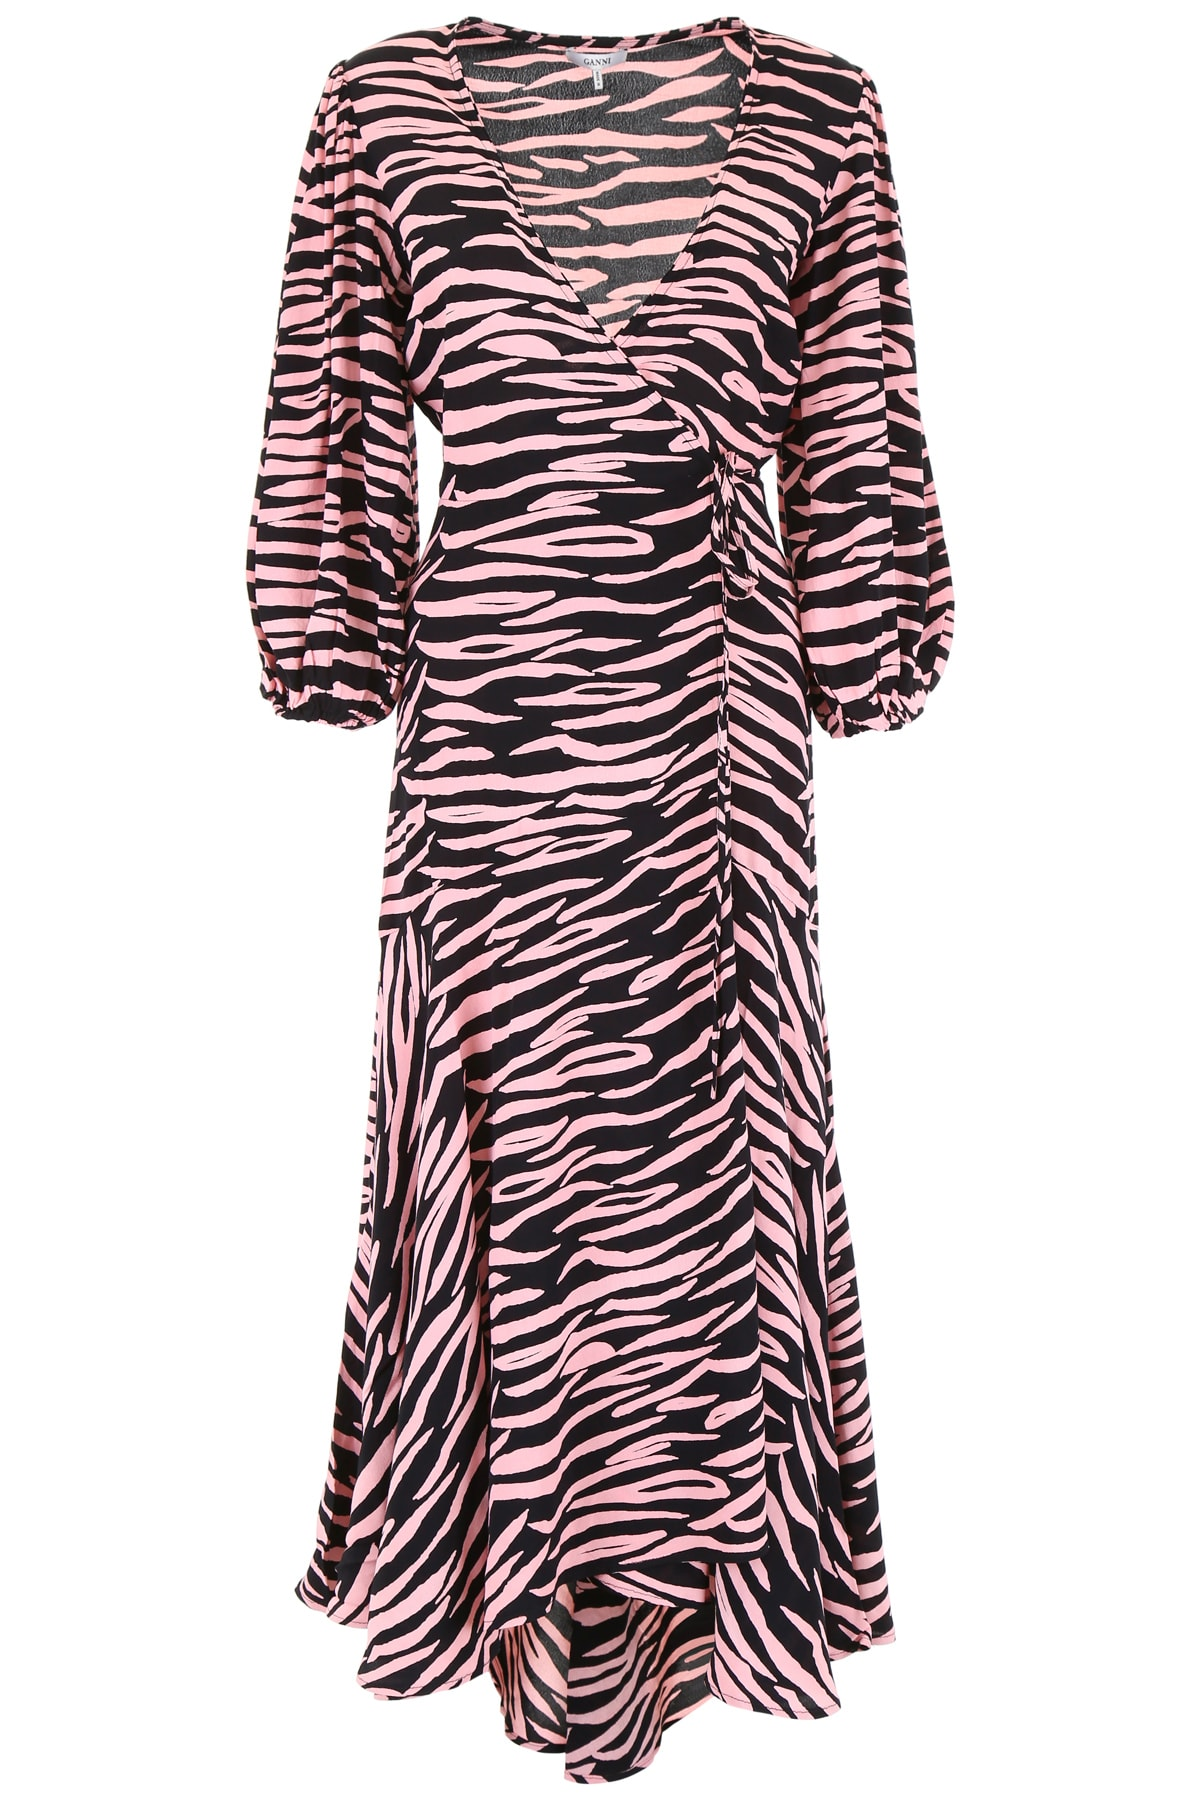 Ganni Zebra Wrap Dress